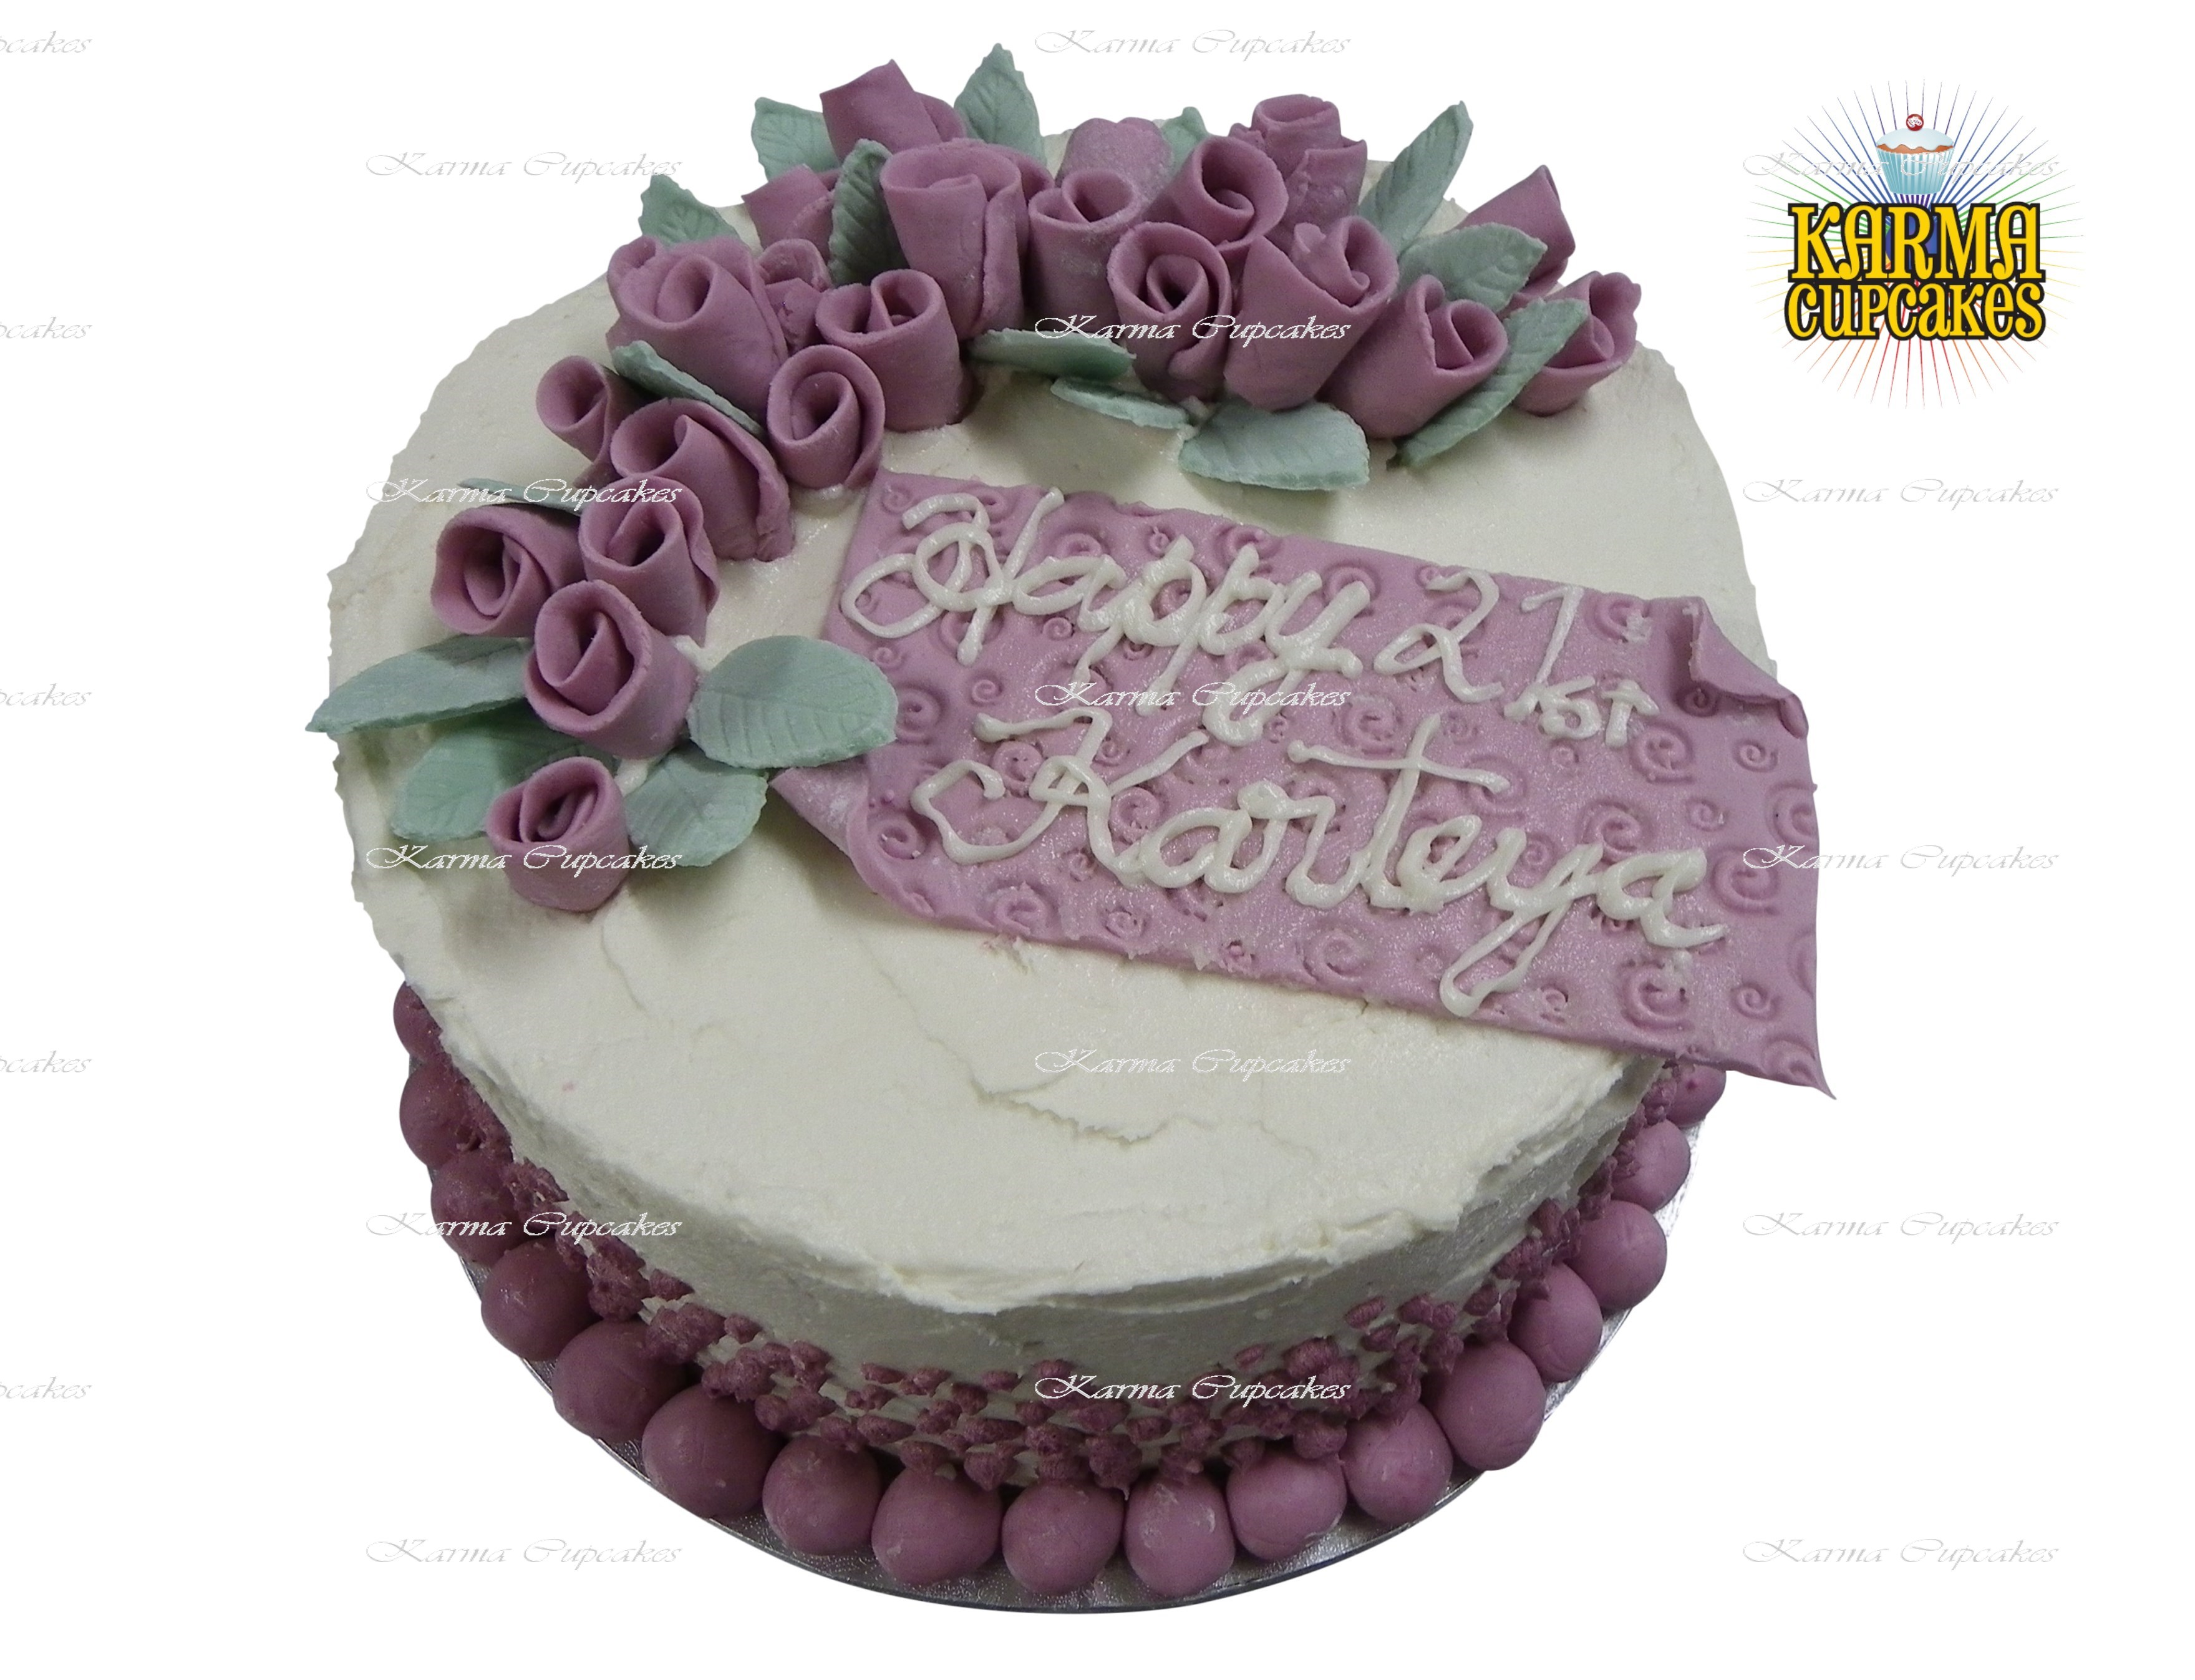 8 Inch Cake With Sugar Roses Leaves With Edible Image Plaque